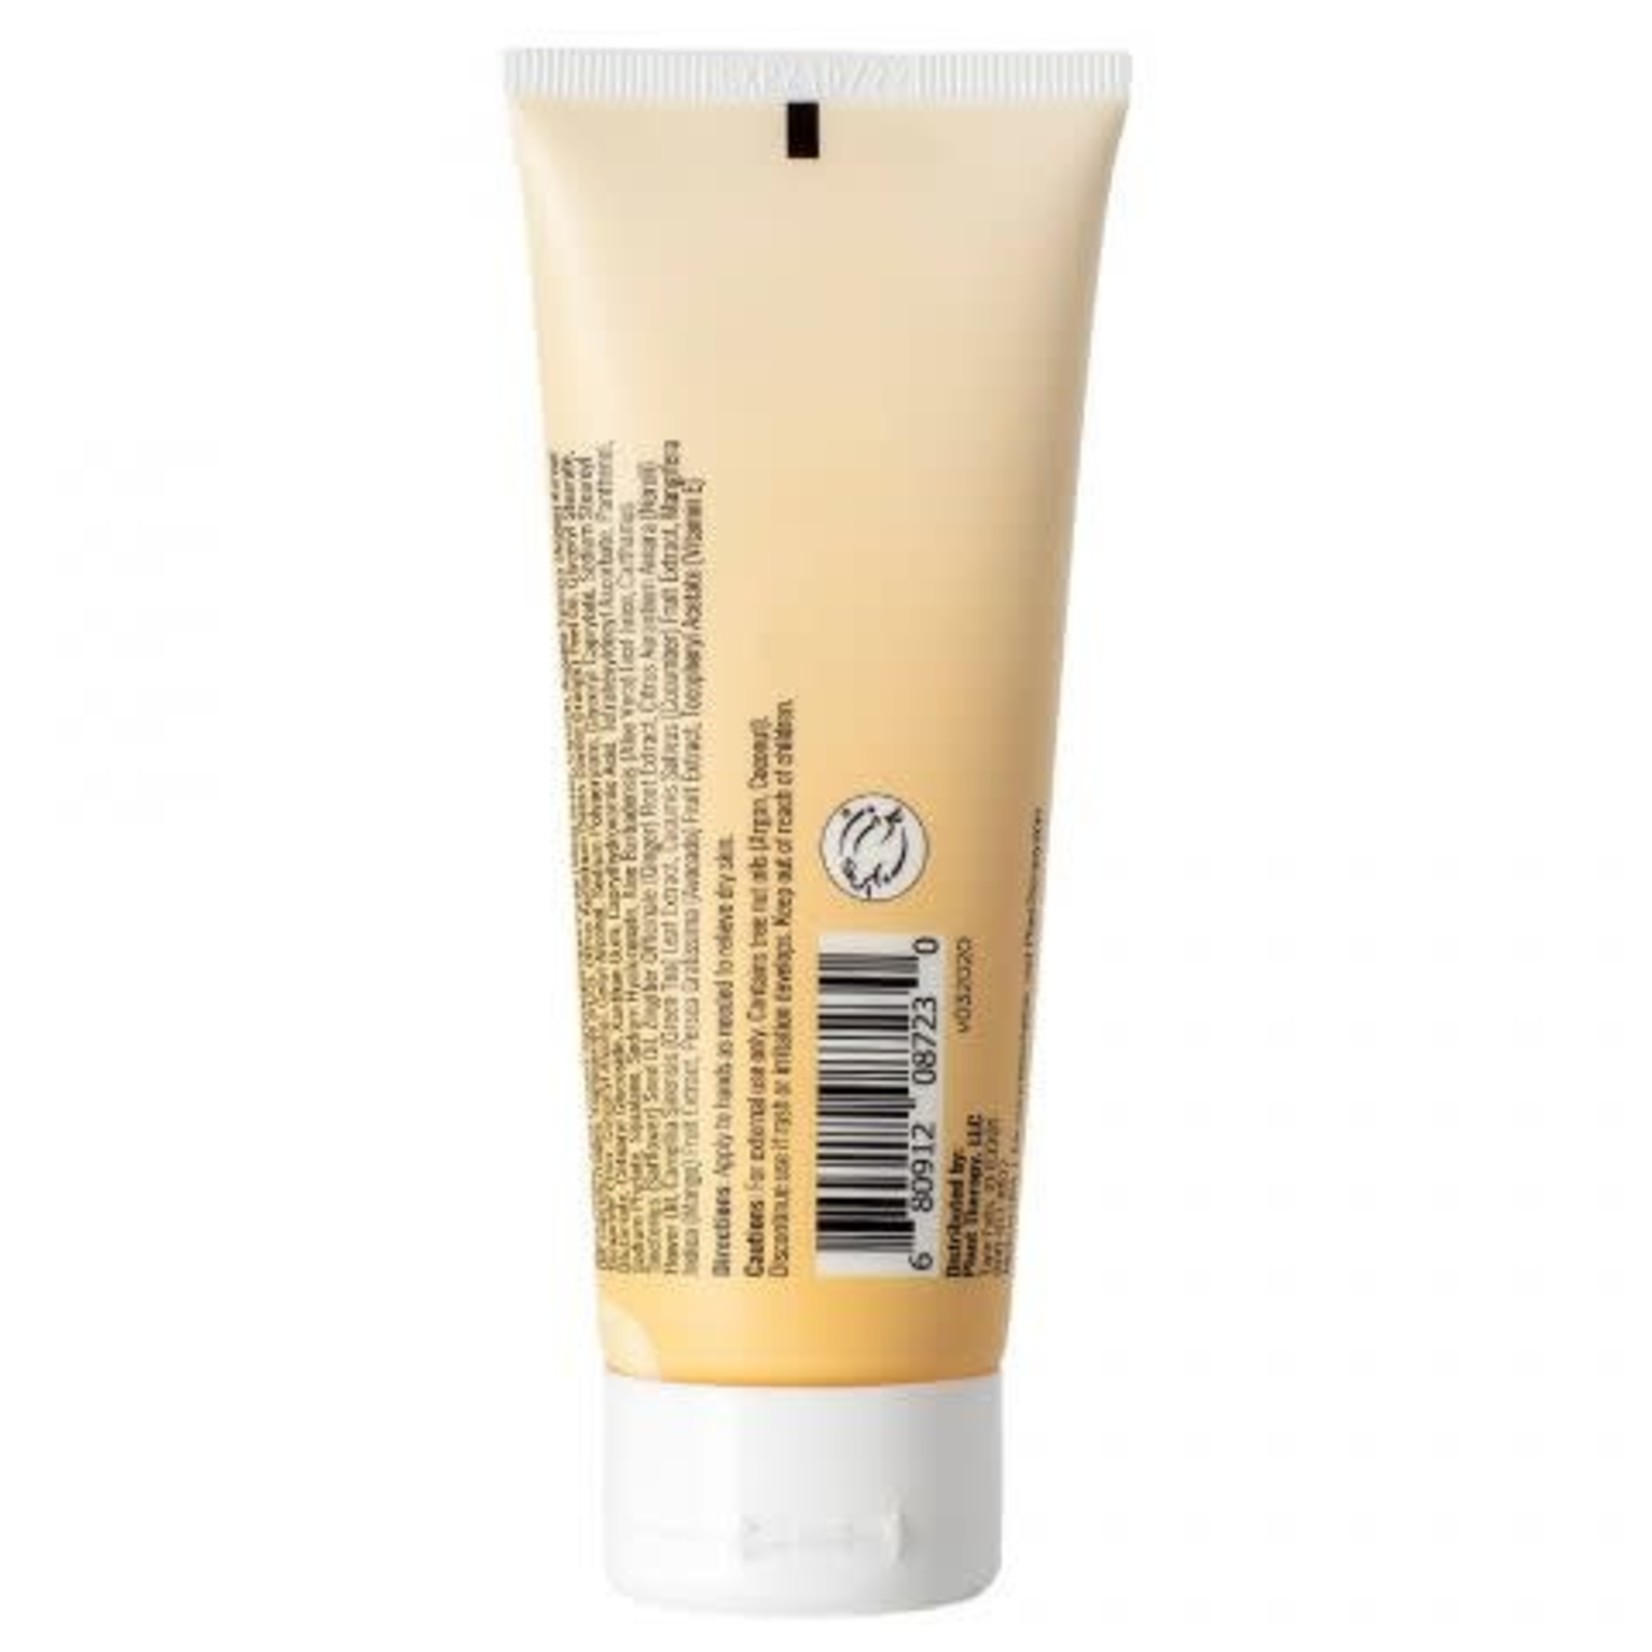 Plant Therapy PT Age Defying Hand Cream 2.5oz